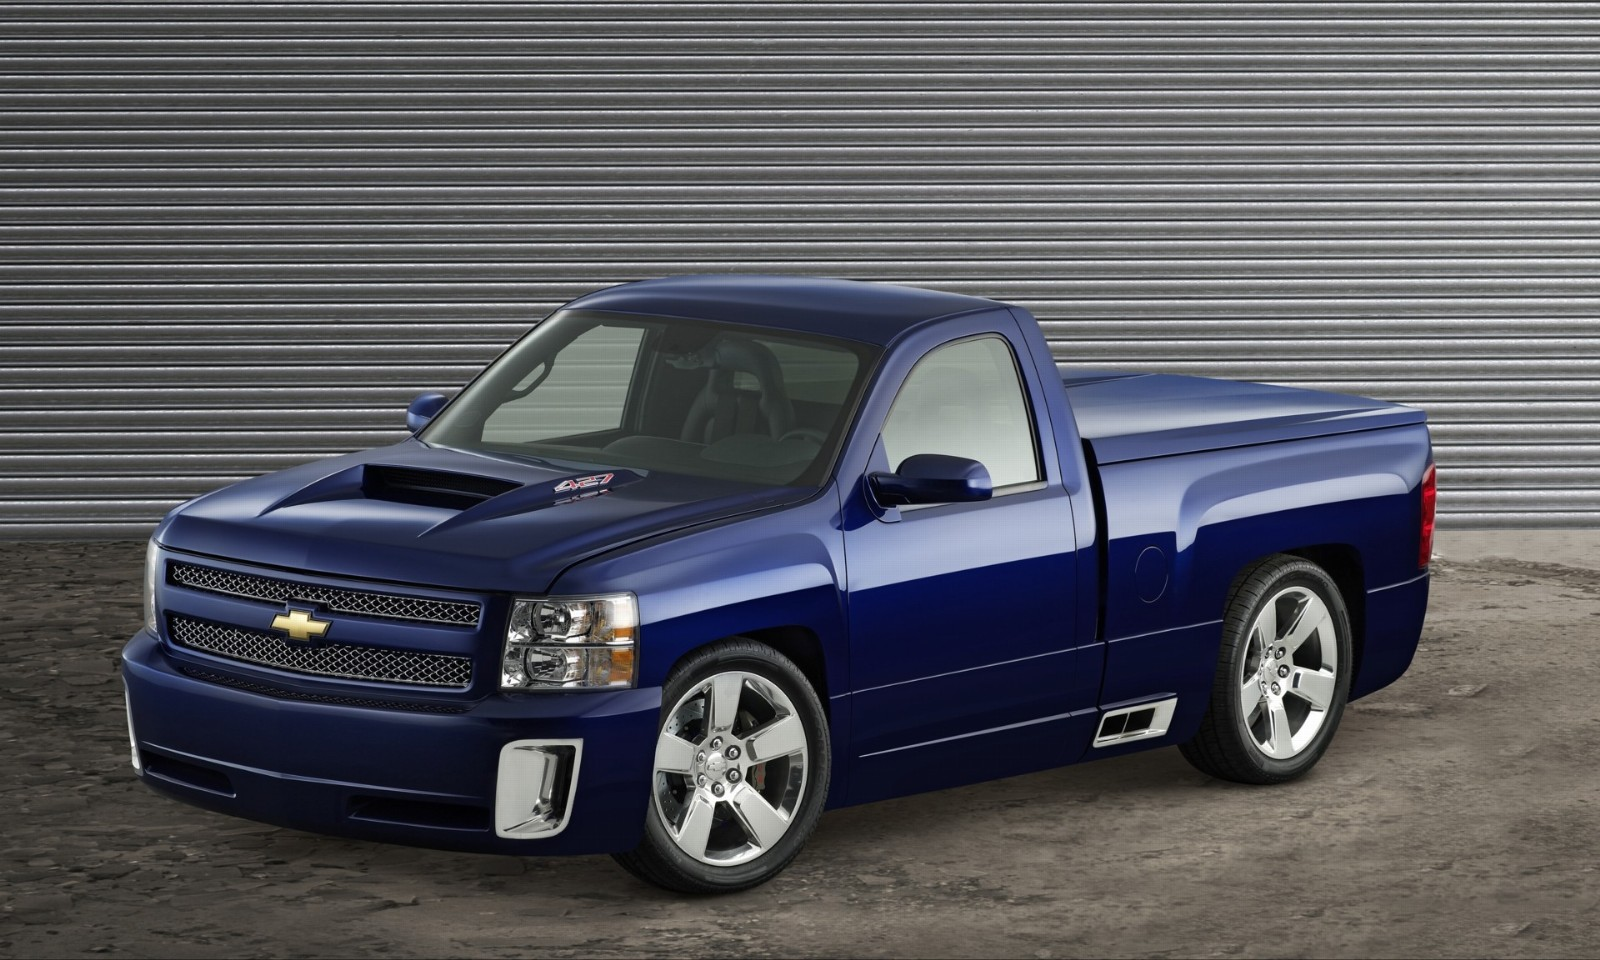 Chevy Silverado Price >> 2006 Chevrolet Silverado 427 Concept Image. Photo 2 of 2